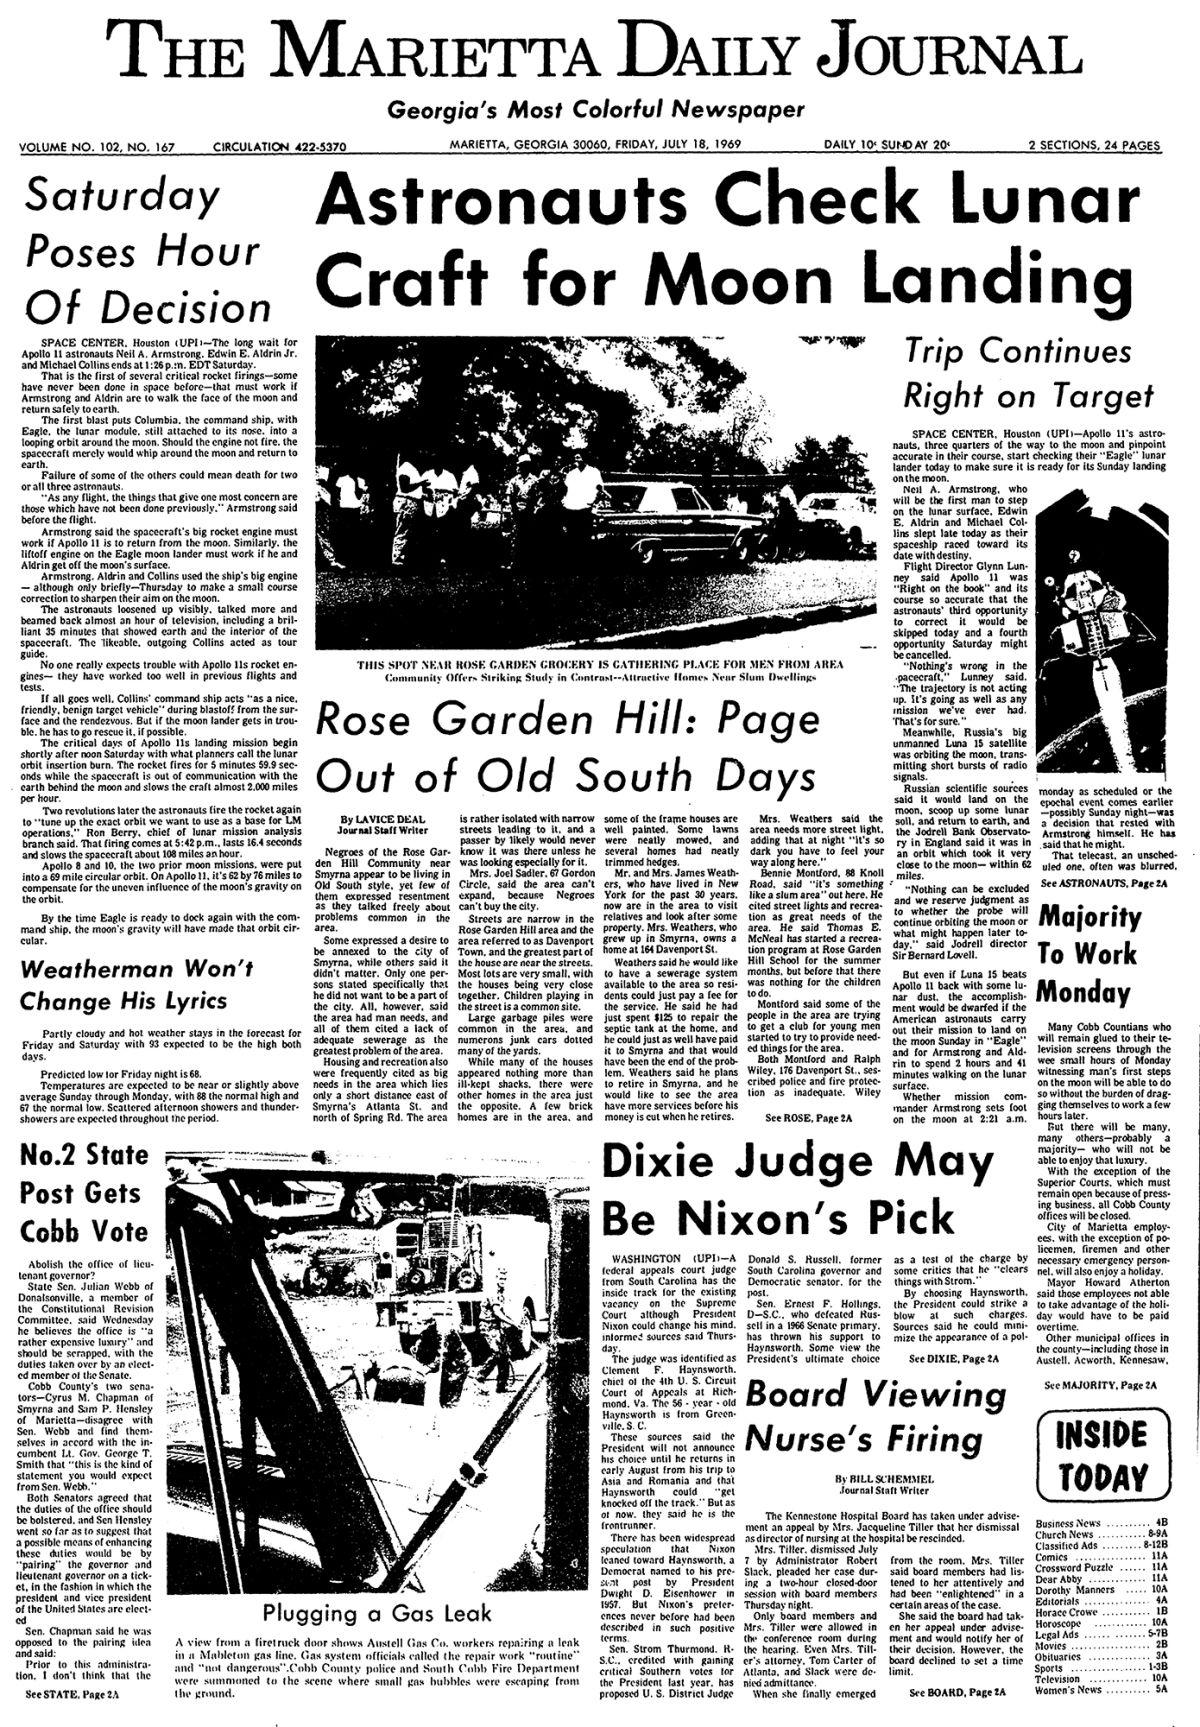 071919_MDJ_Time_Capsule_07181969_Apollo_11_Lunar_Landing_Check